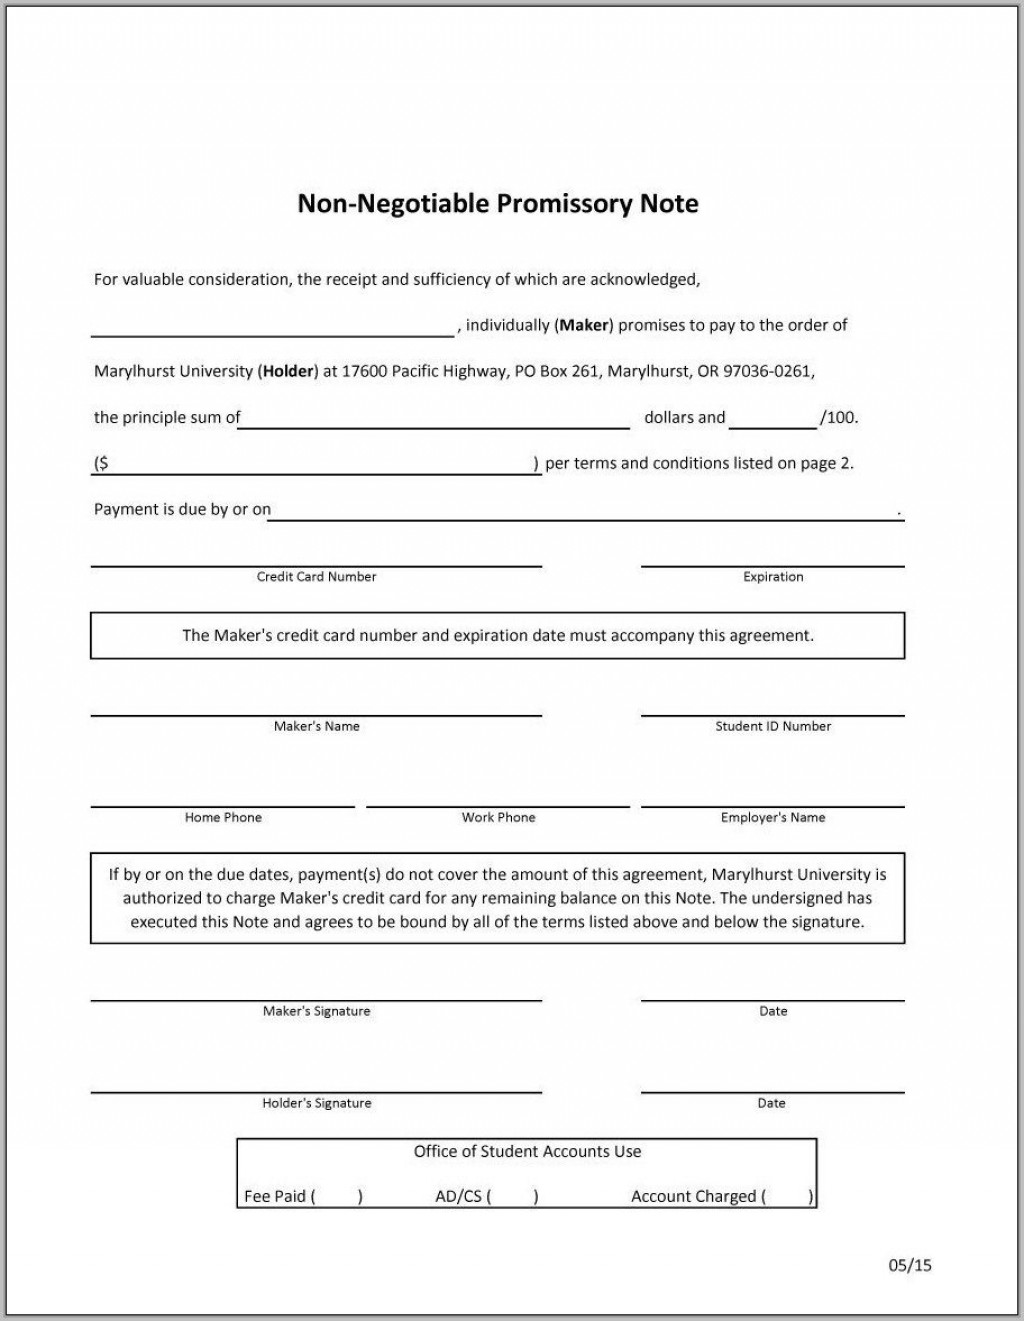 002 Impressive Promissory Note Template Free Image  Printable Blank Form Download Pdf CanadaLarge